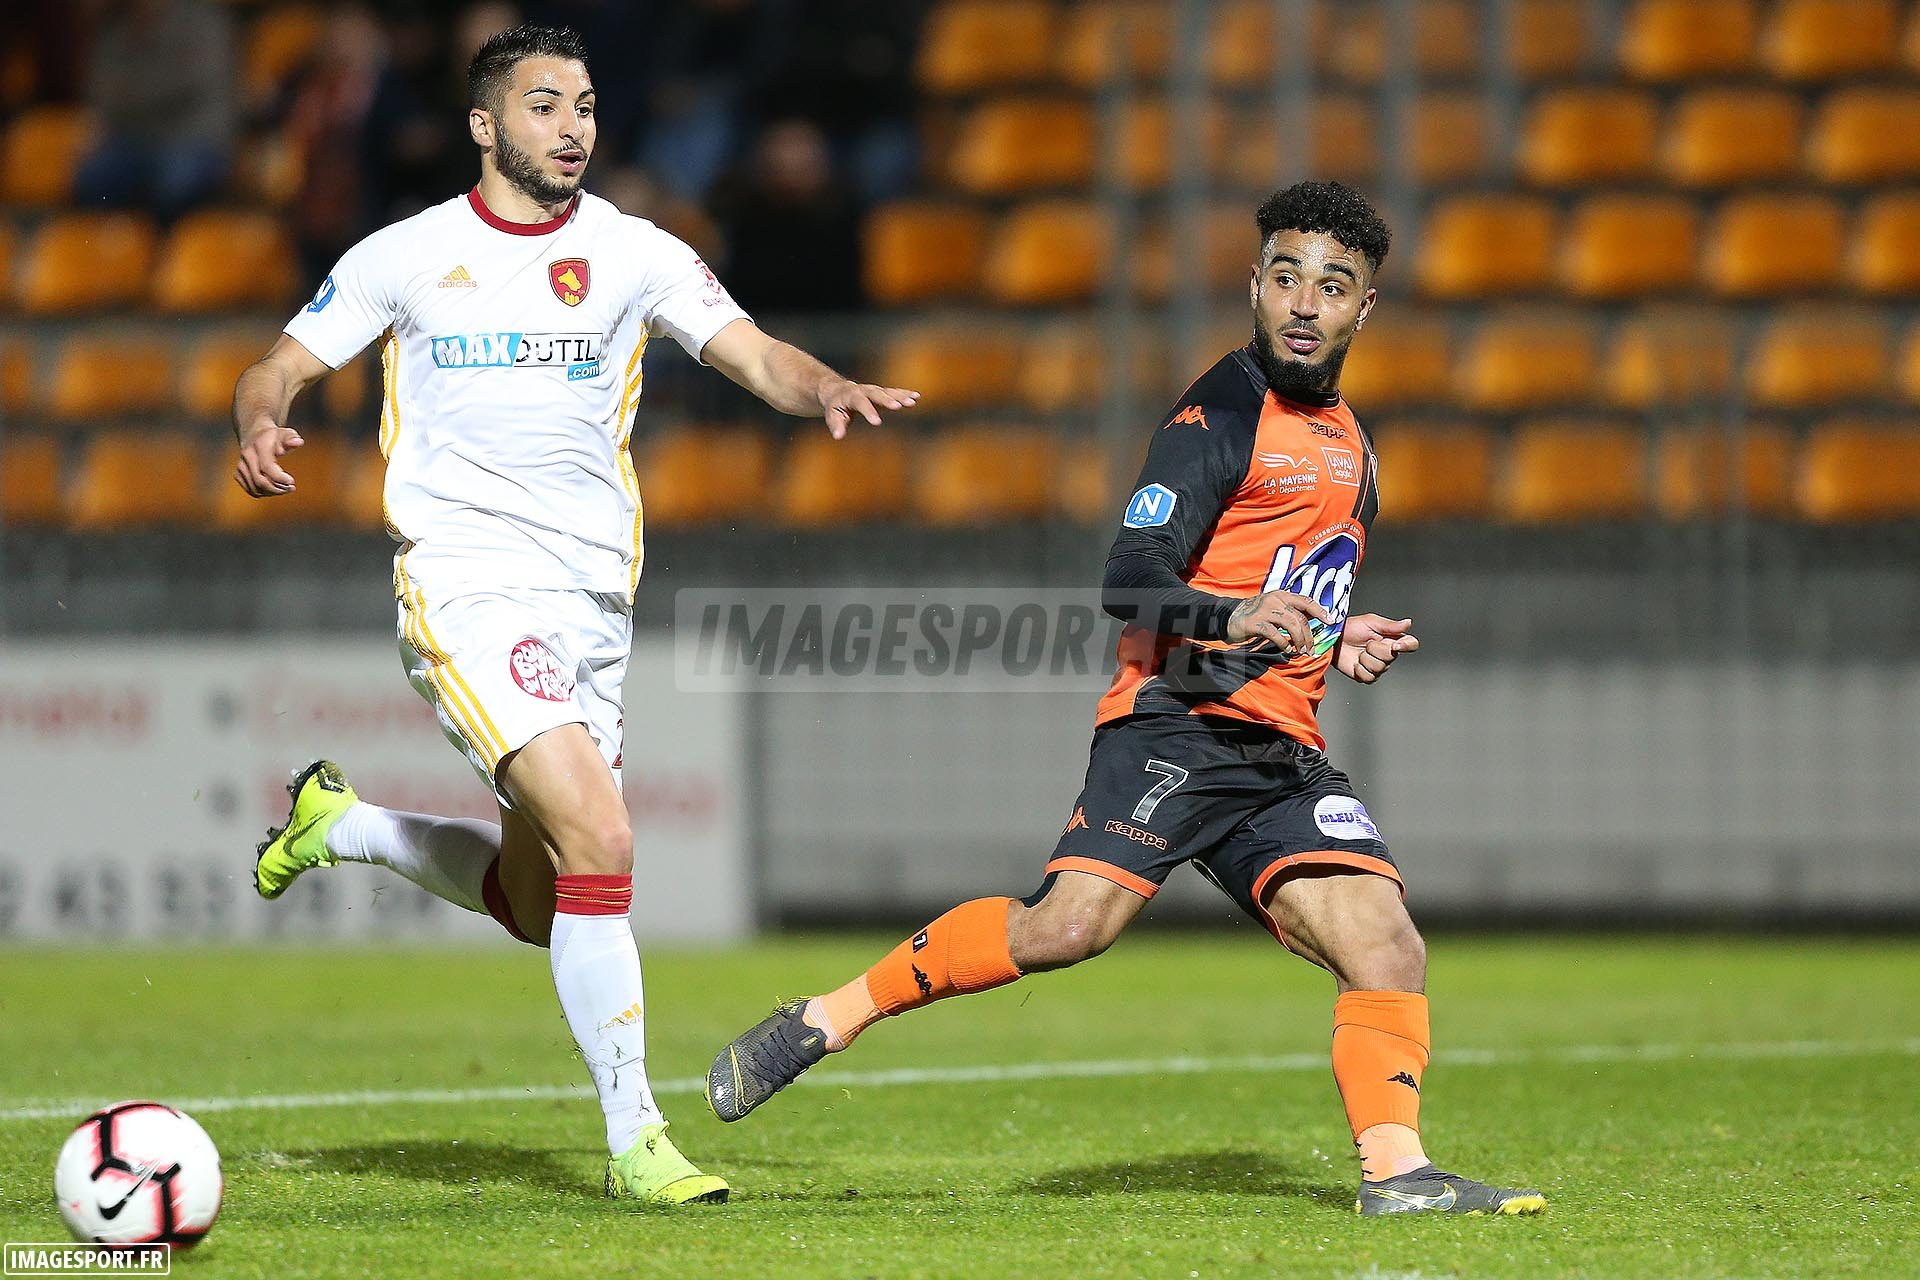 18-19-national-laval-rodez_28